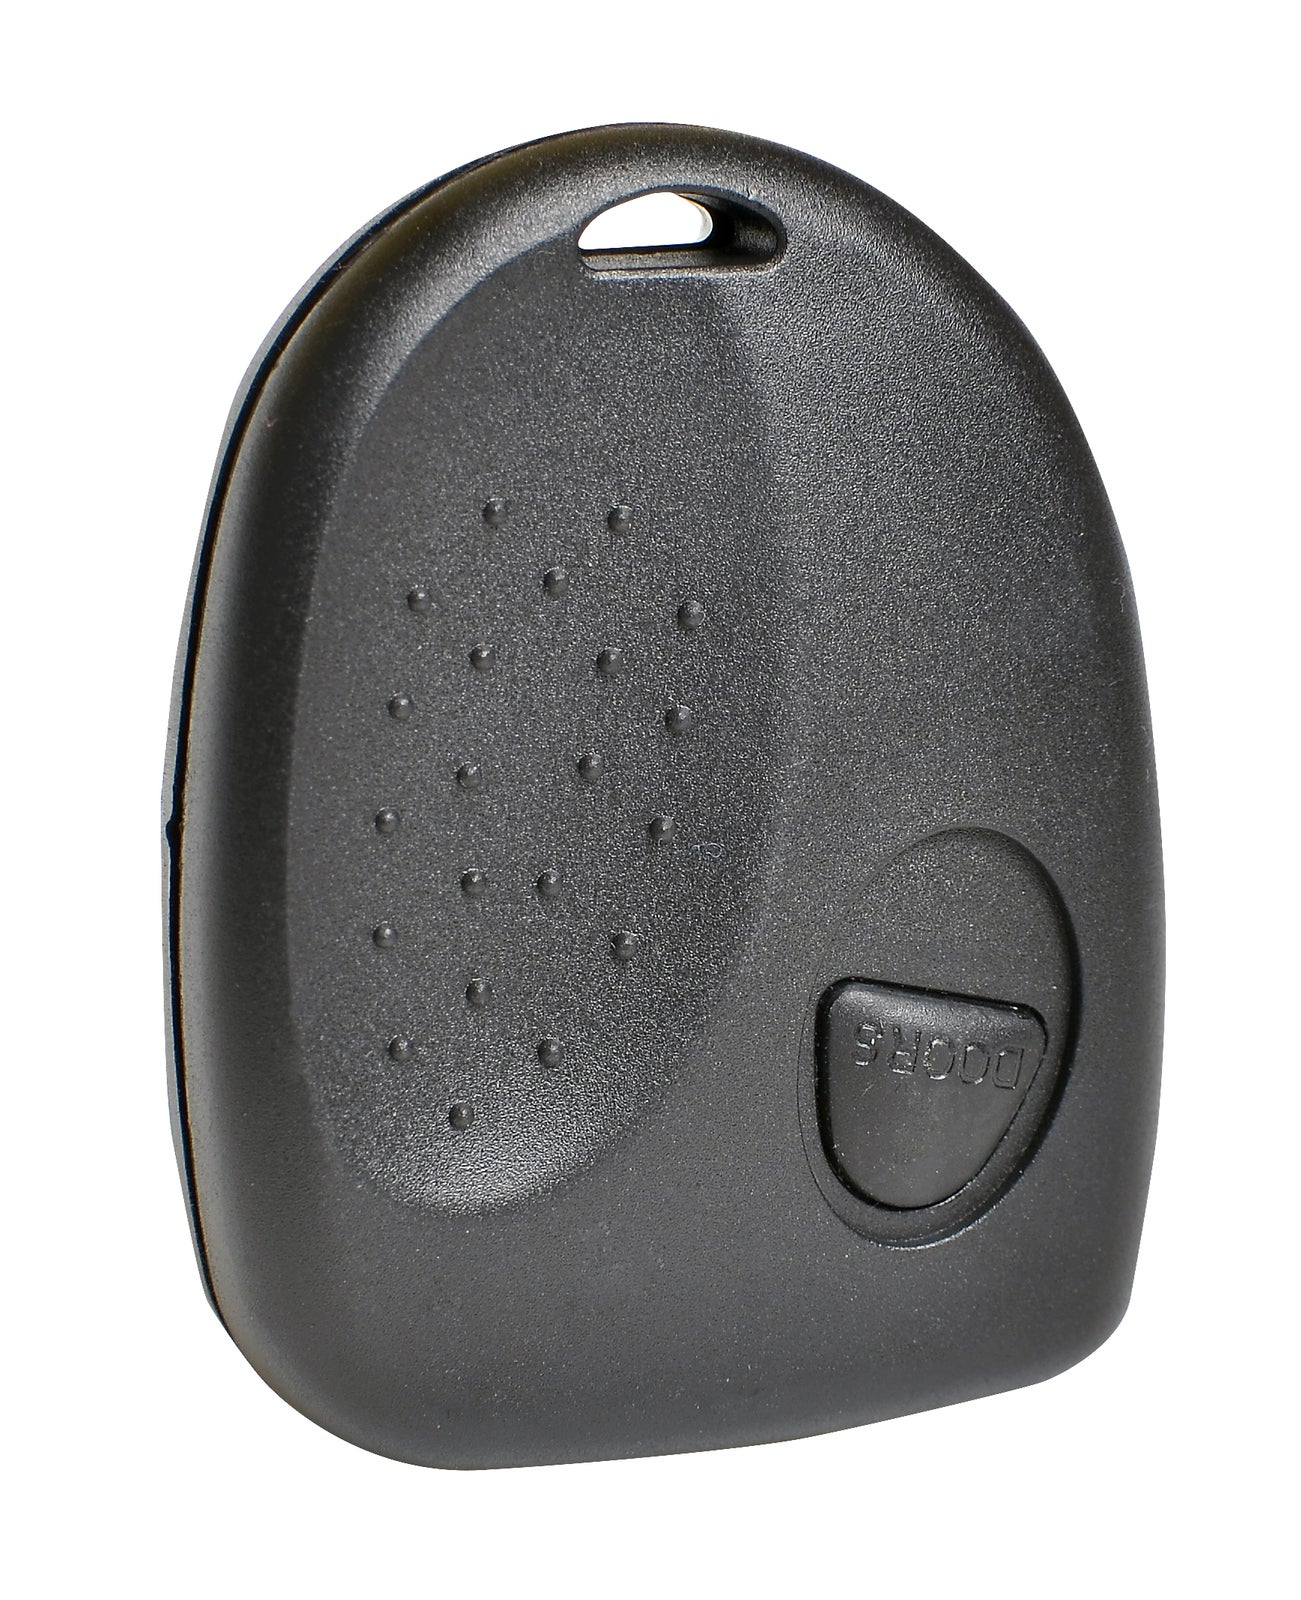 MAP Key Fob Remote Button & Shell For Holden VS-VZ 1 Button KF201